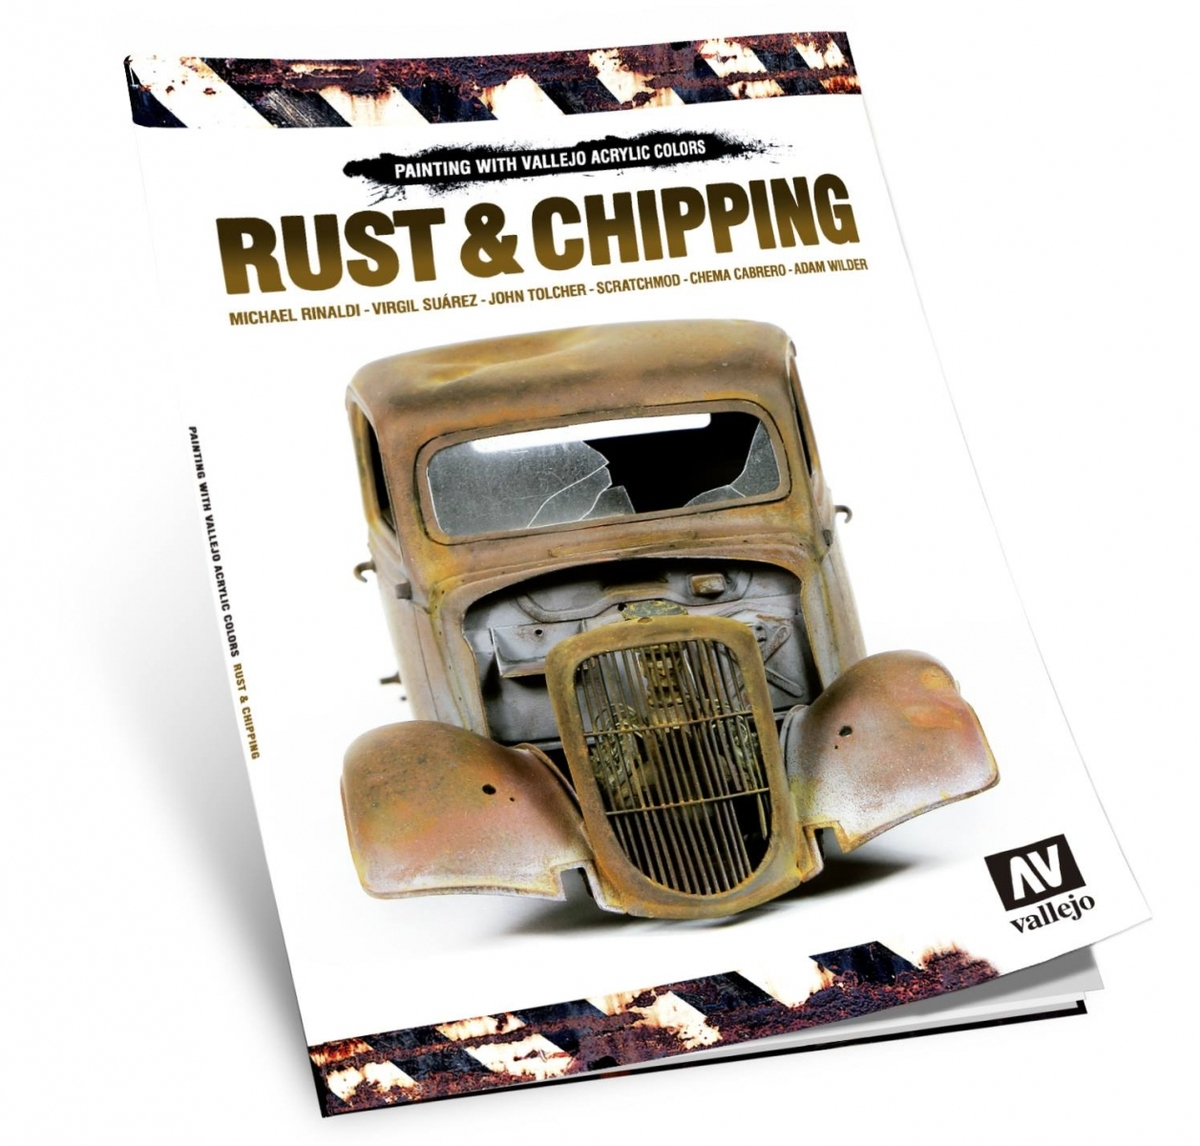 Rust & Chipping - Image 1